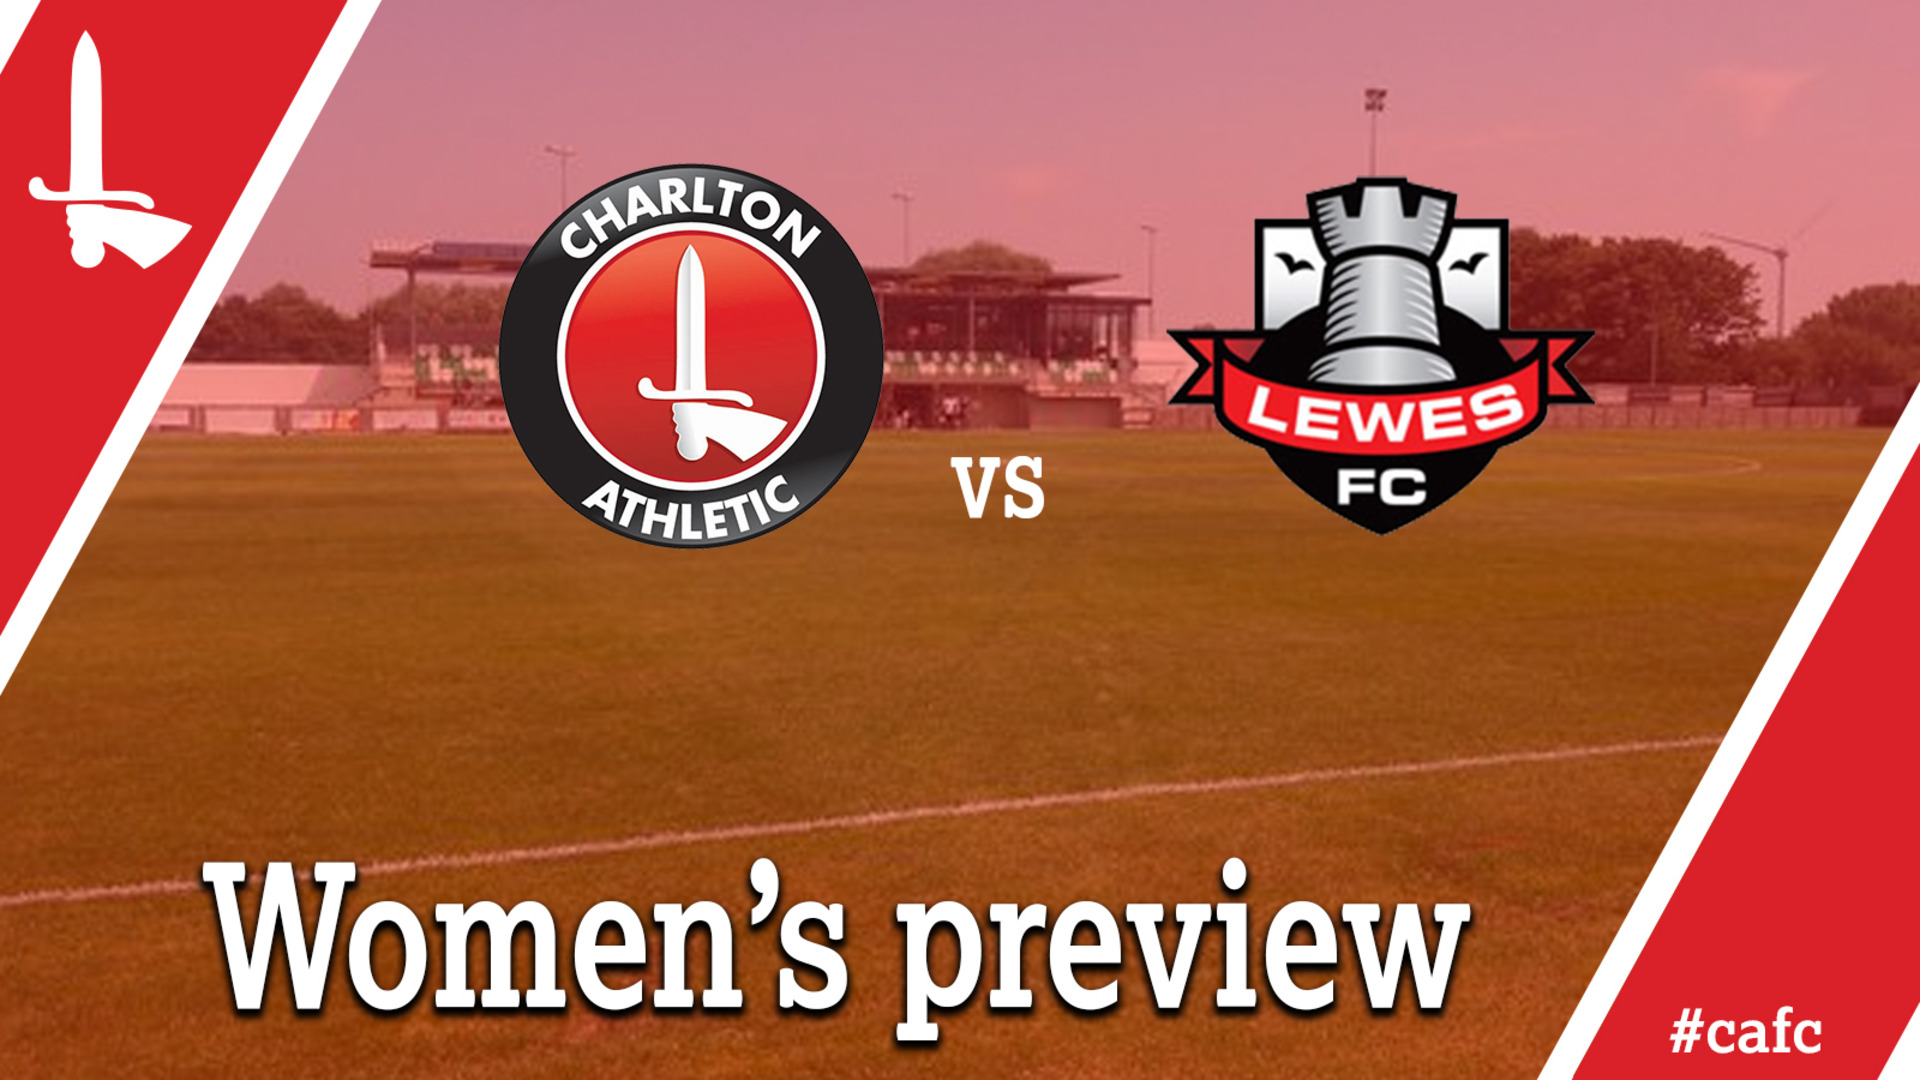 WOMEN'S PREVIEW | Riteesh Mishra looks ahead to Lewes